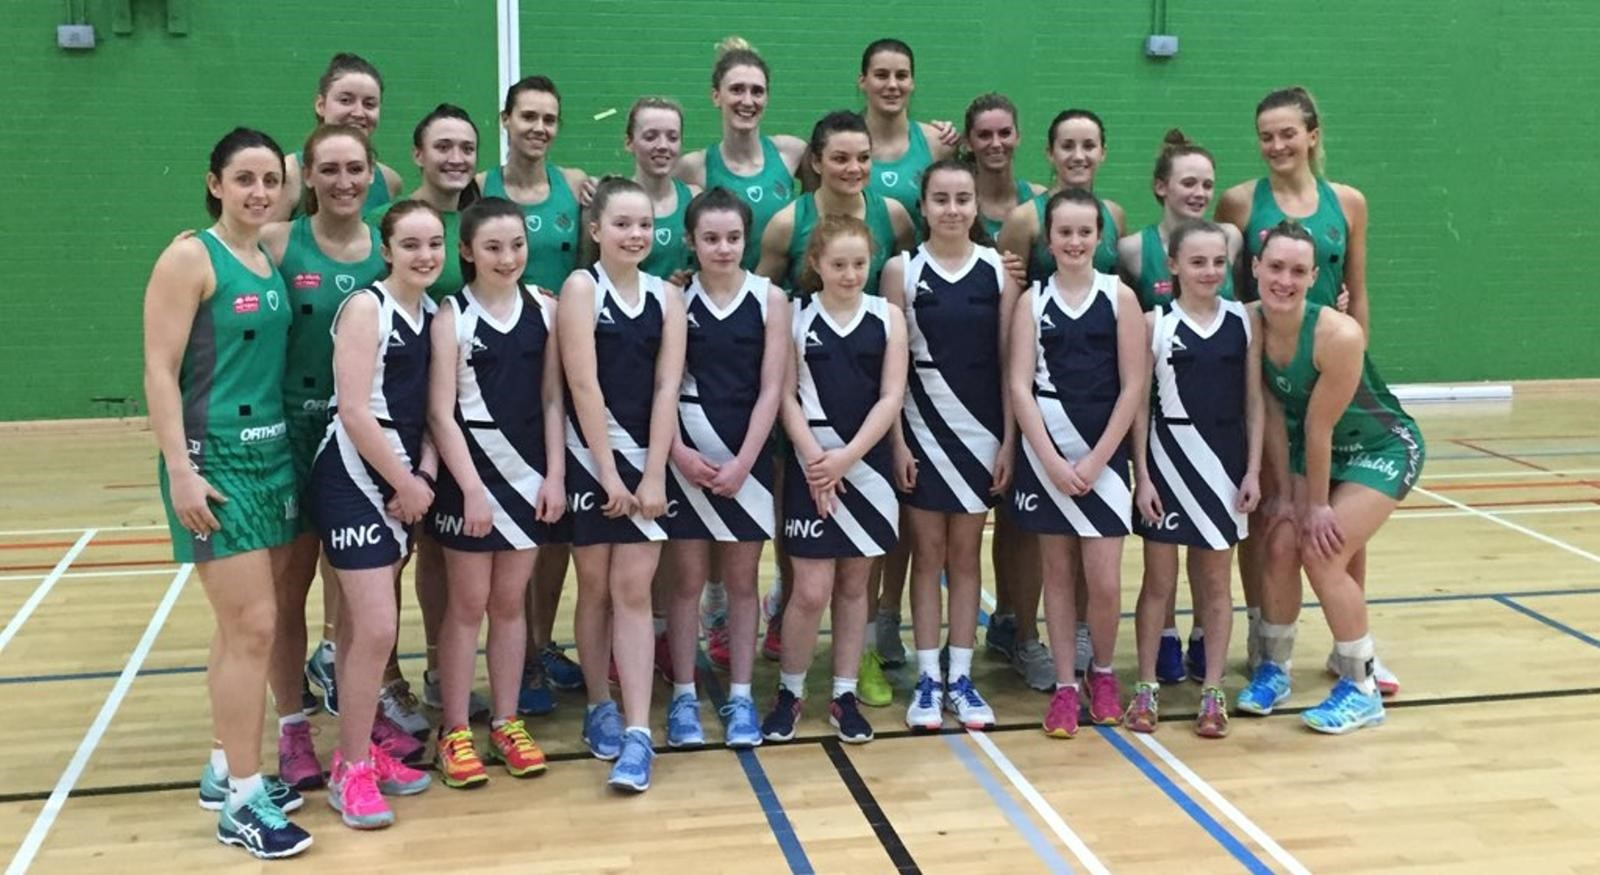 We were honoured to have Holywell Netball Club as ball girls for the match.